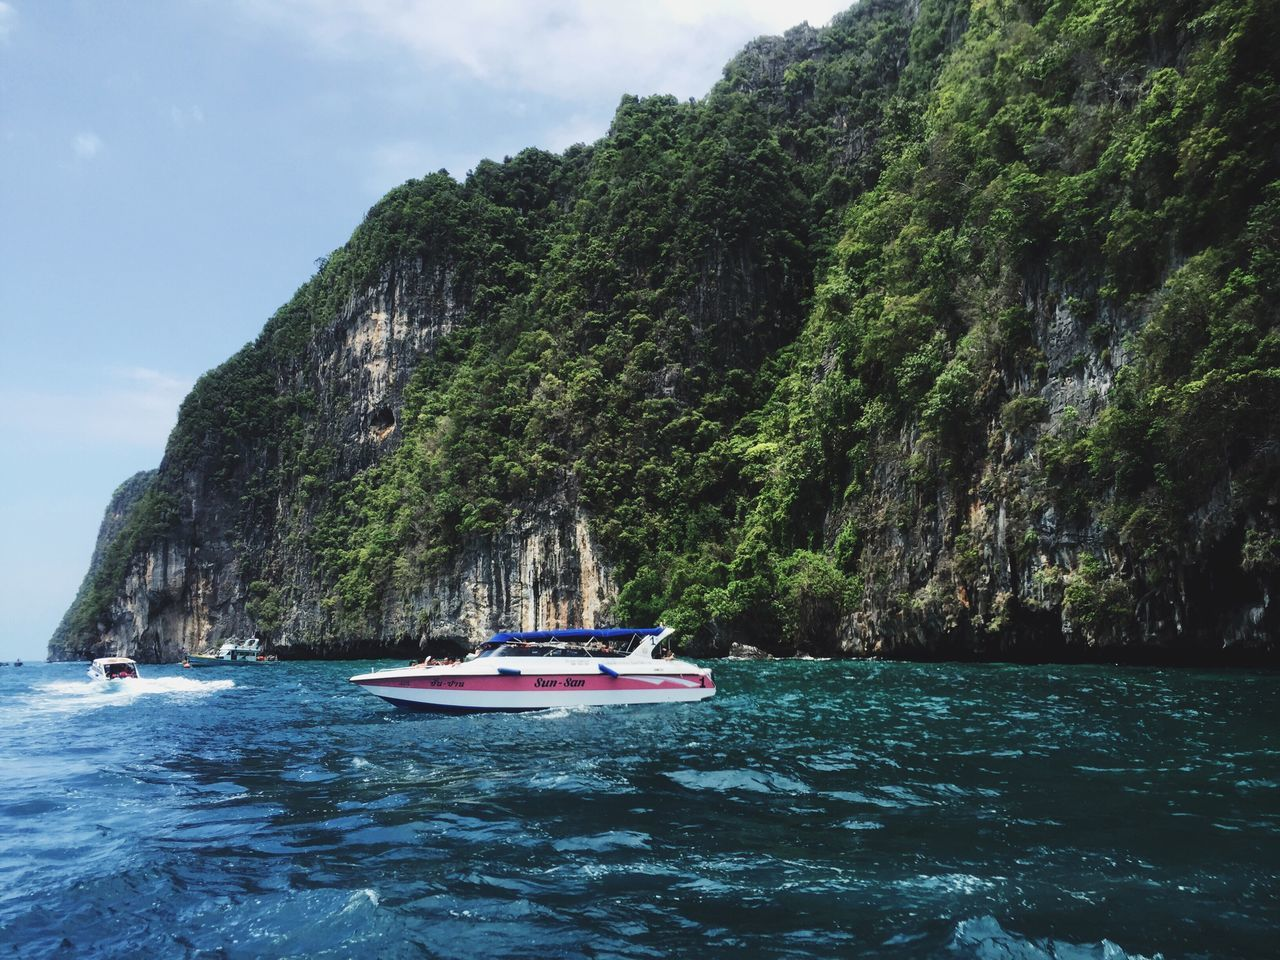 nautical vessel, rock formation, water, sea, transportation, nature, mode of transport, rock - object, mountain, scenics, beauty in nature, waterfront, cliff, day, outdoors, sky, longtail boat, travel destinations, no people, sailing, wake